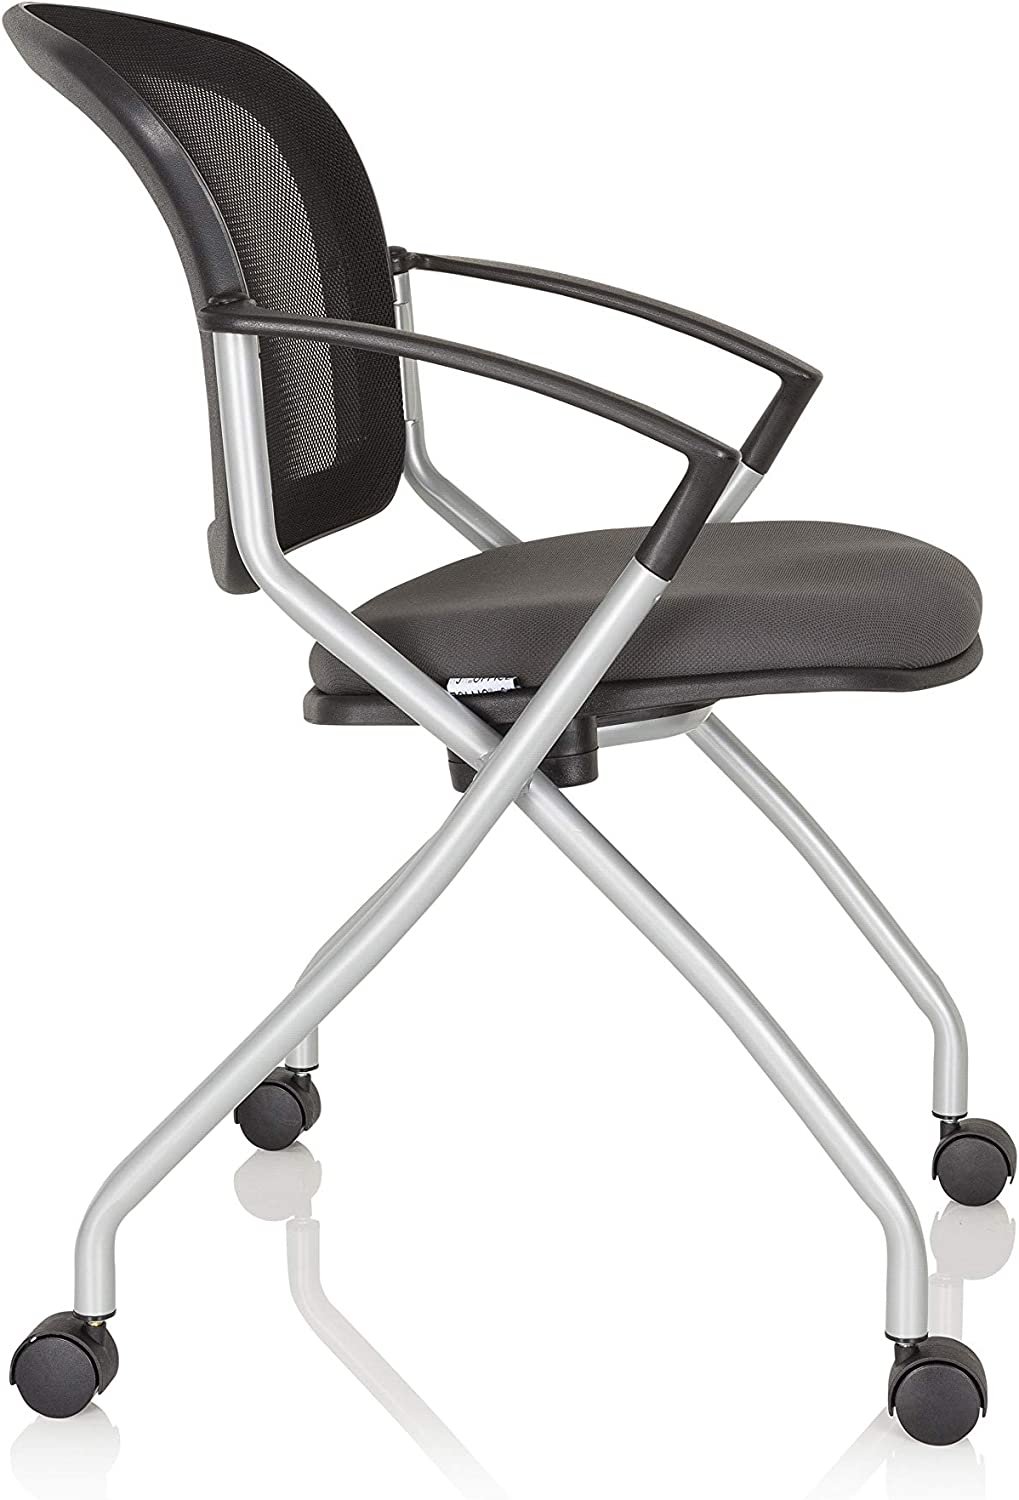 hjh OFFICE 760002 conference chair PRIORITY BASIC 2 per pack mesh//fabric grey black visitor chair with castors and armrests